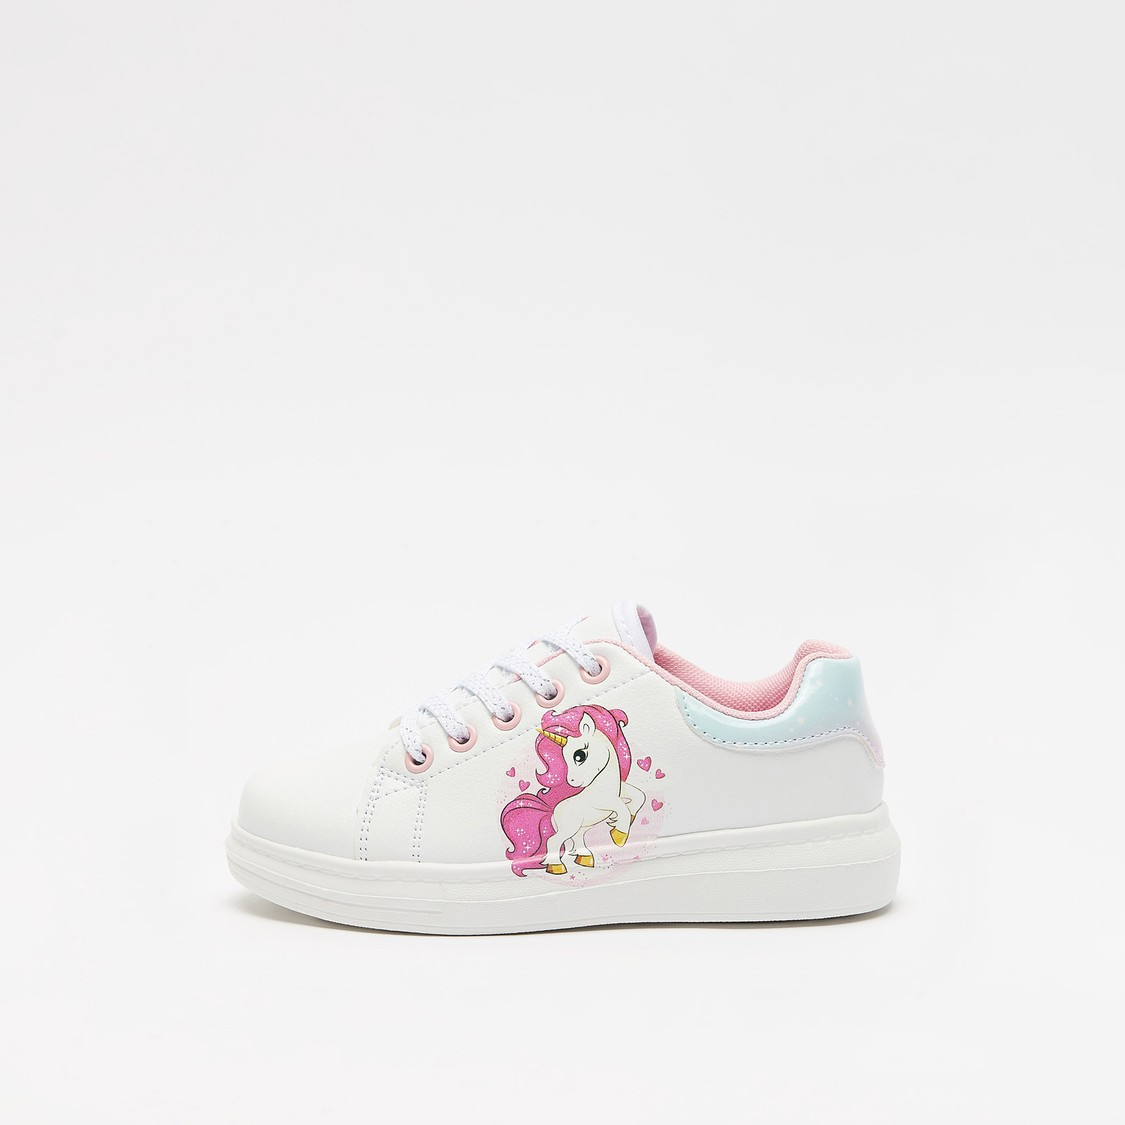 Unicorn Print Shoes with Lace-Up Closure